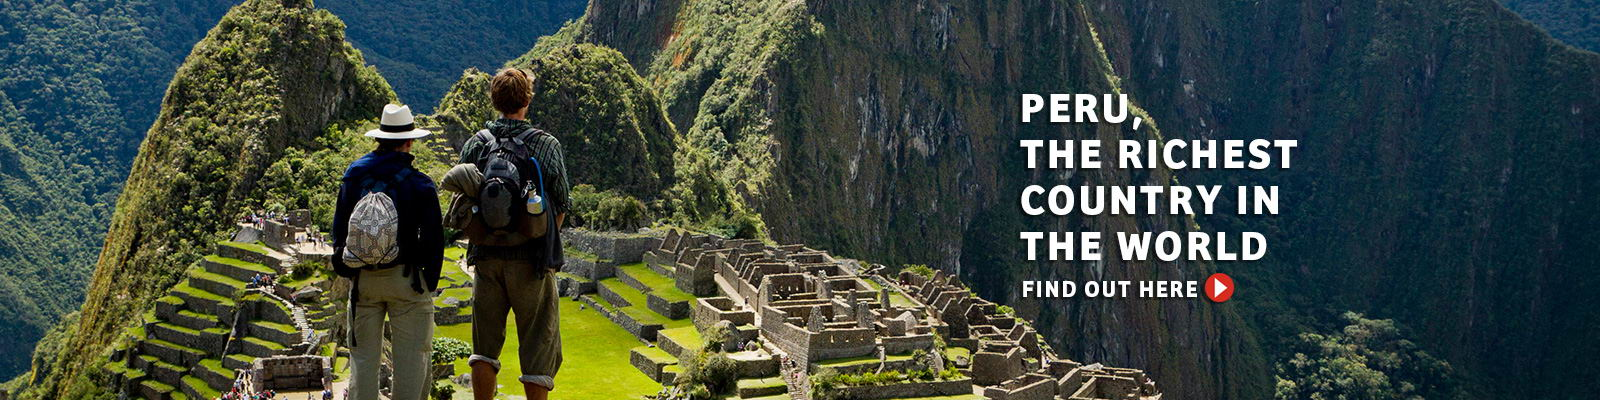 Travel Tips For Peru